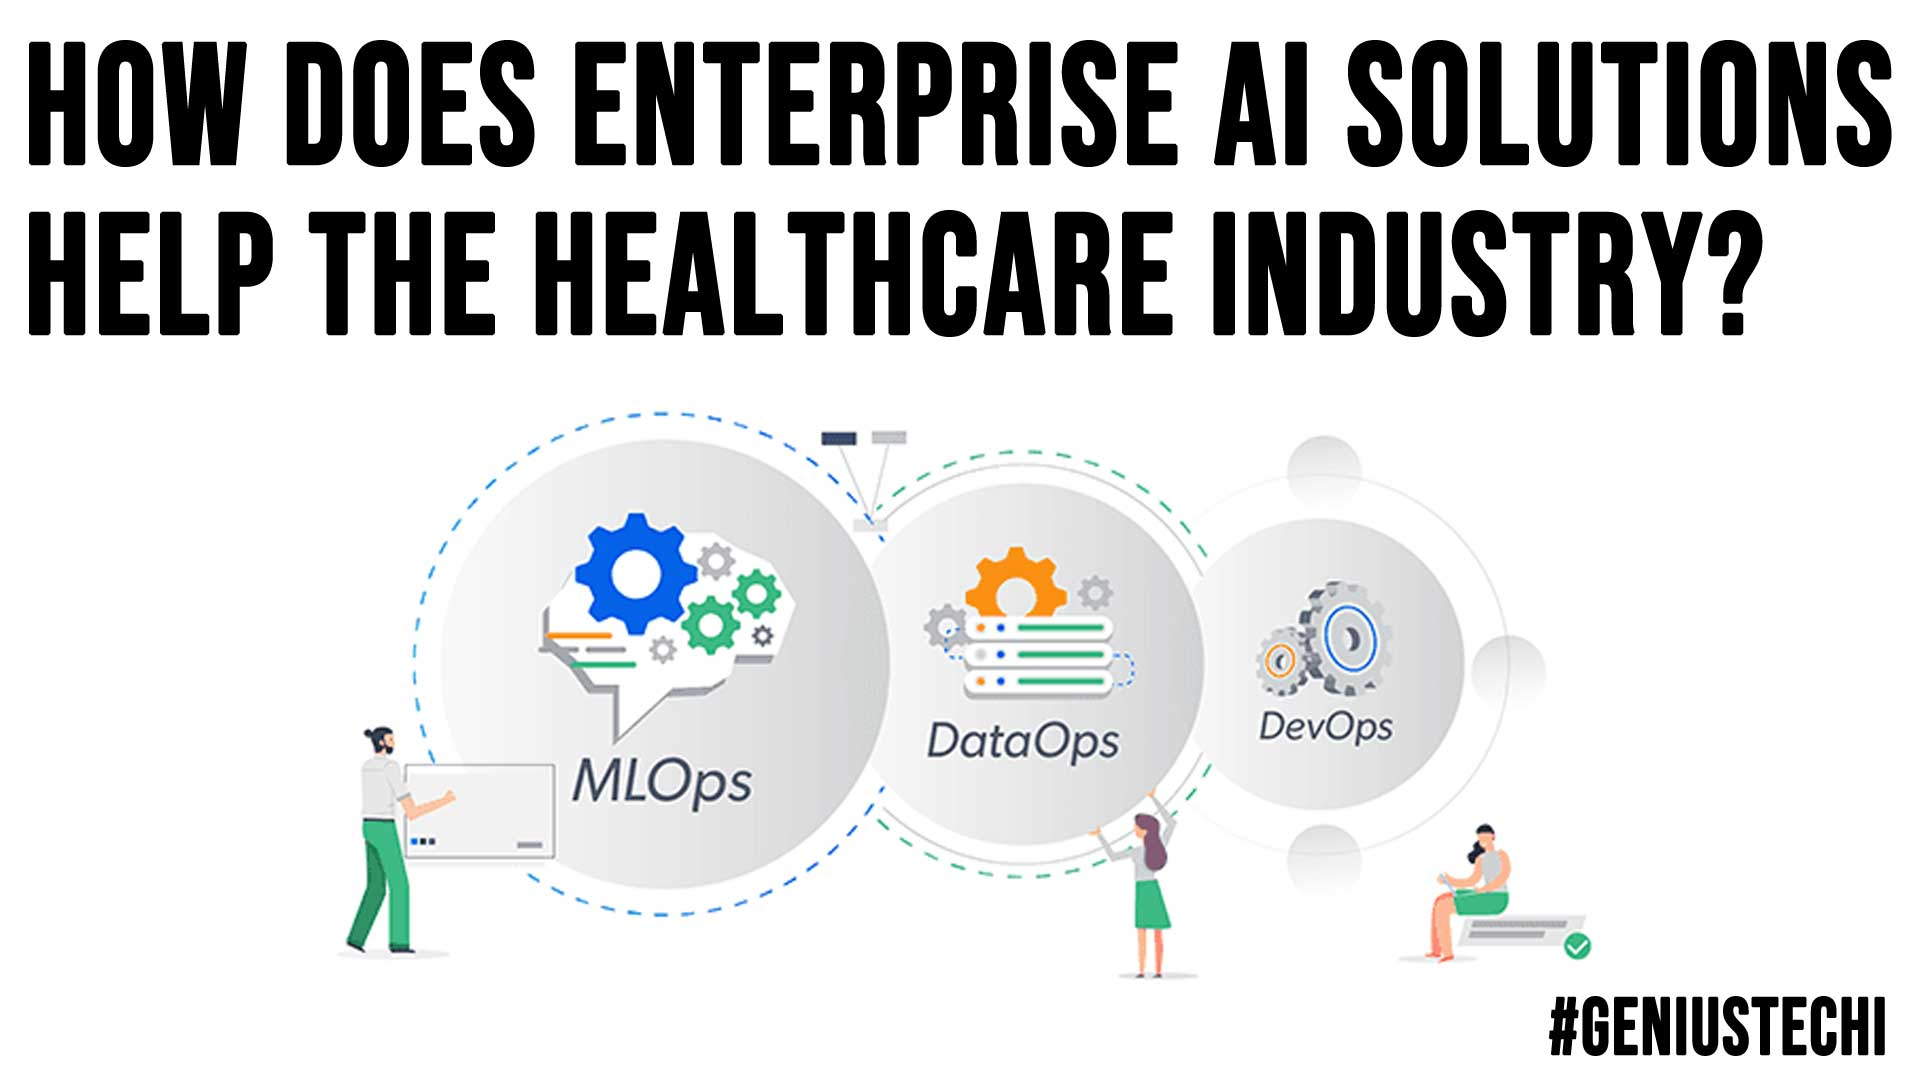 How Does Enterprise AI Solutions Help the Healthcare Industry